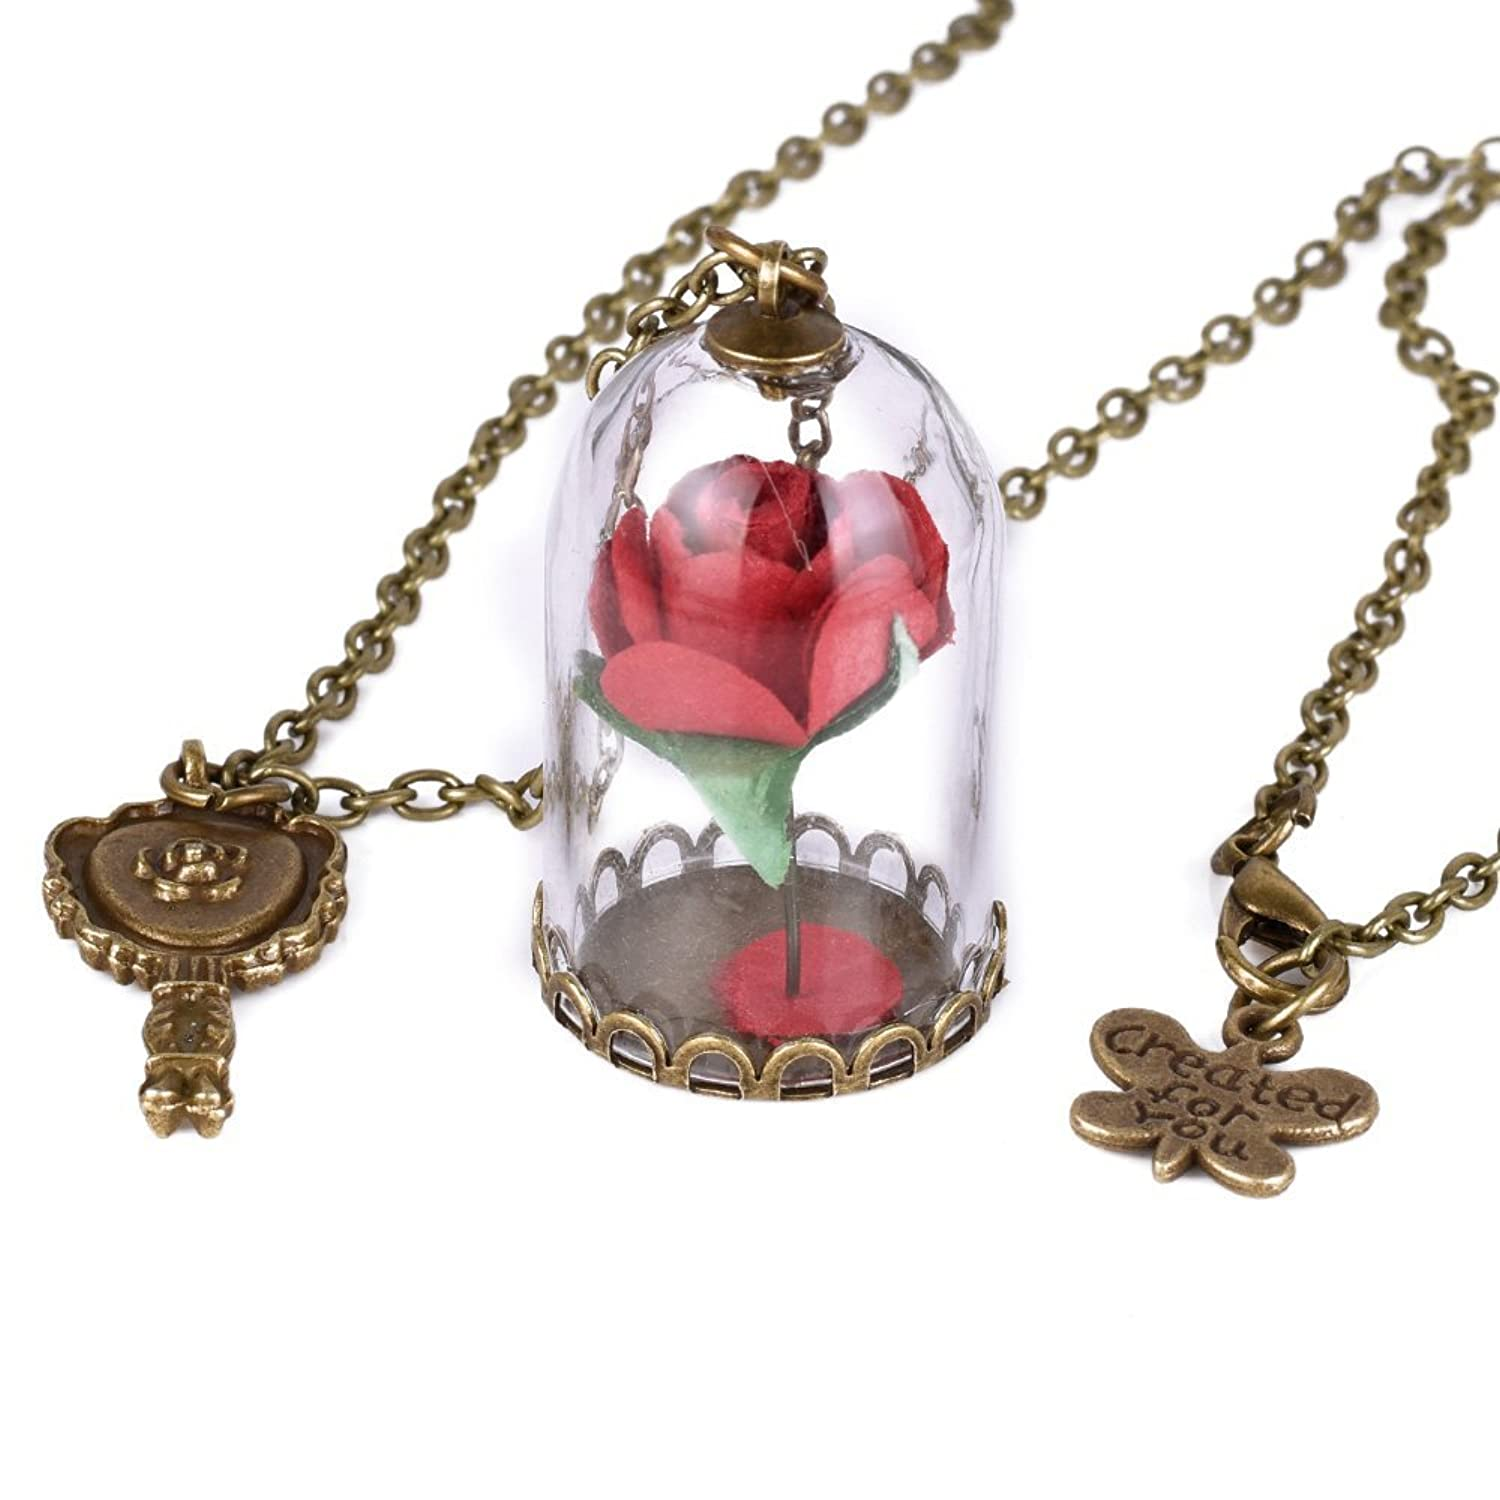 Womens Glass Dome Floral Flower Enchanted Rose Pendant Jewelry Set Necklace Bracelet